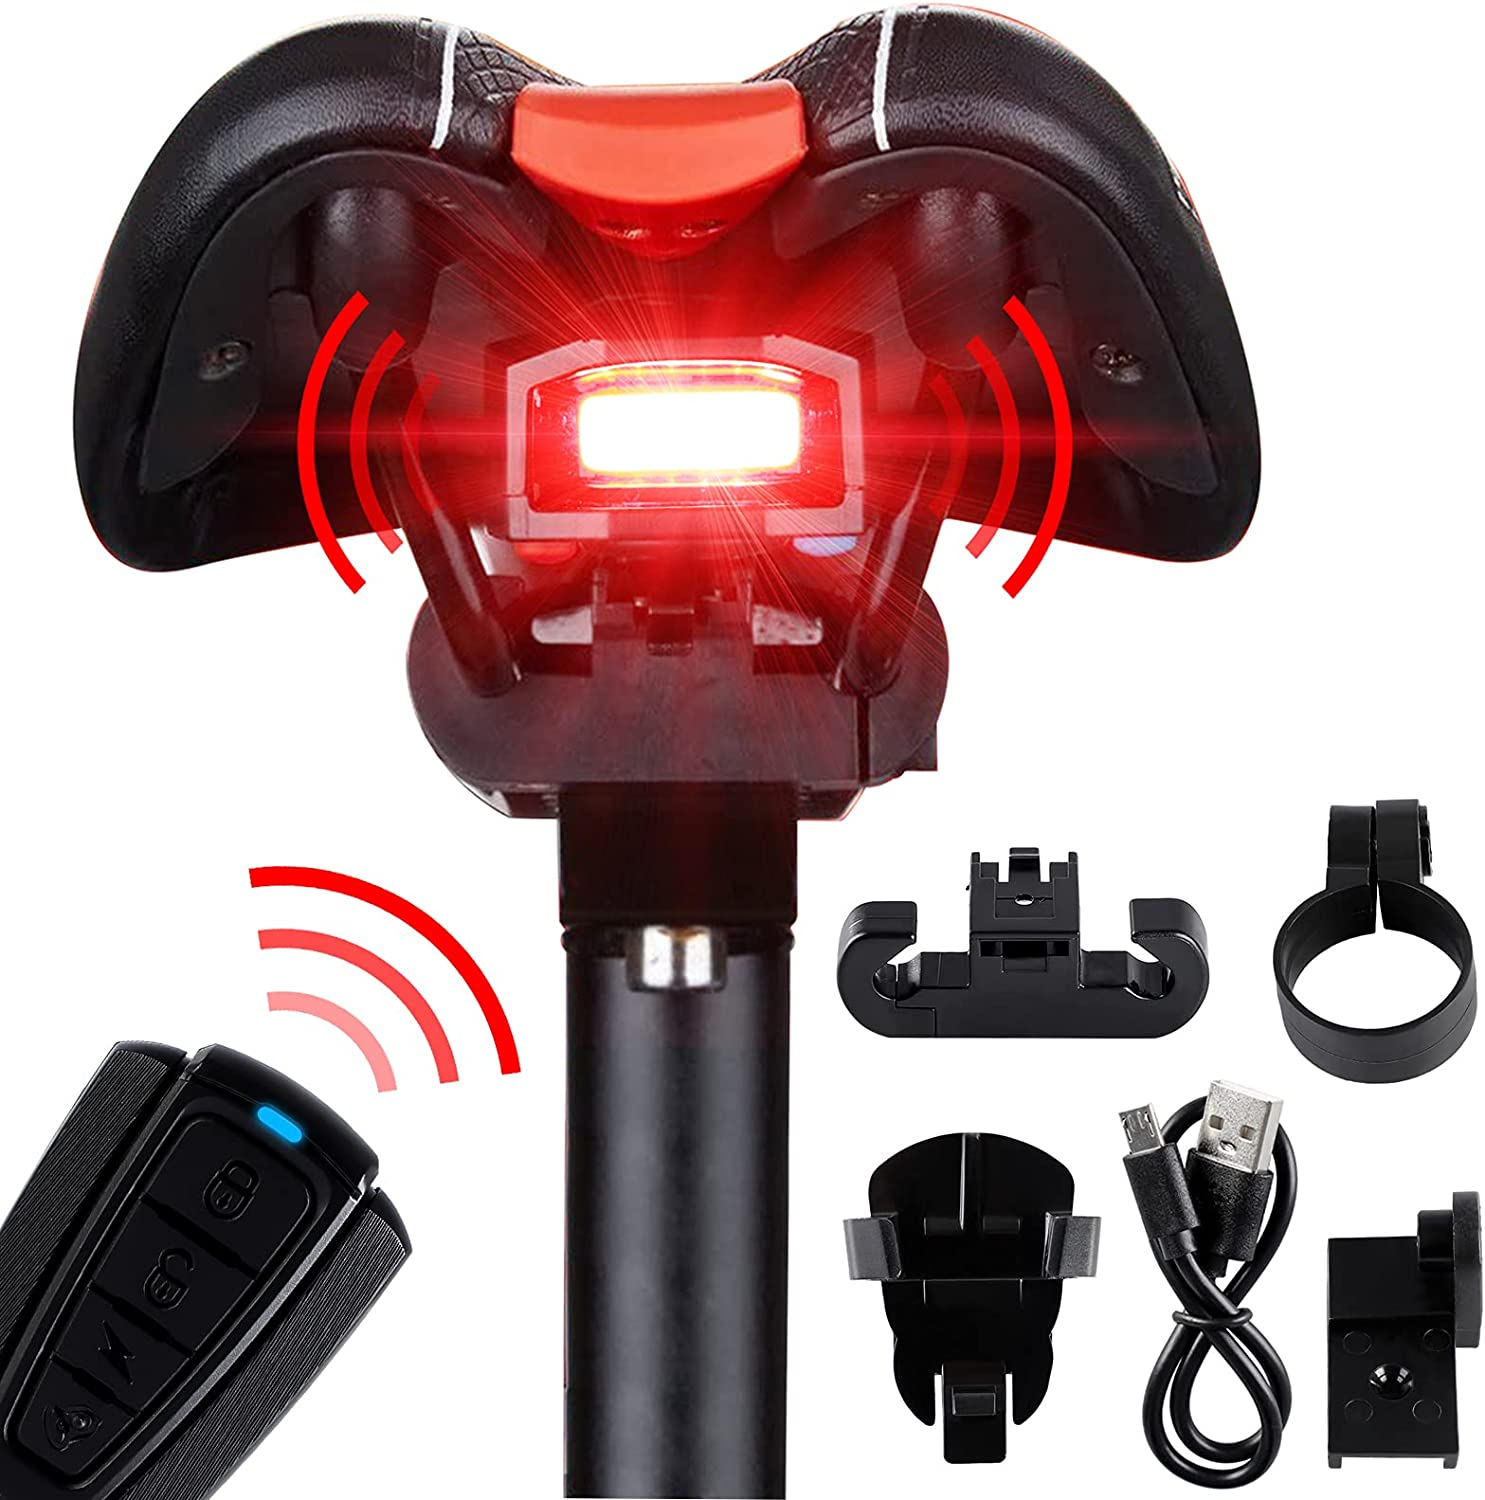 Bike Taillight Alarm Horn Fansport Rechargea Light Mail order Rear Fashionable Bicycle